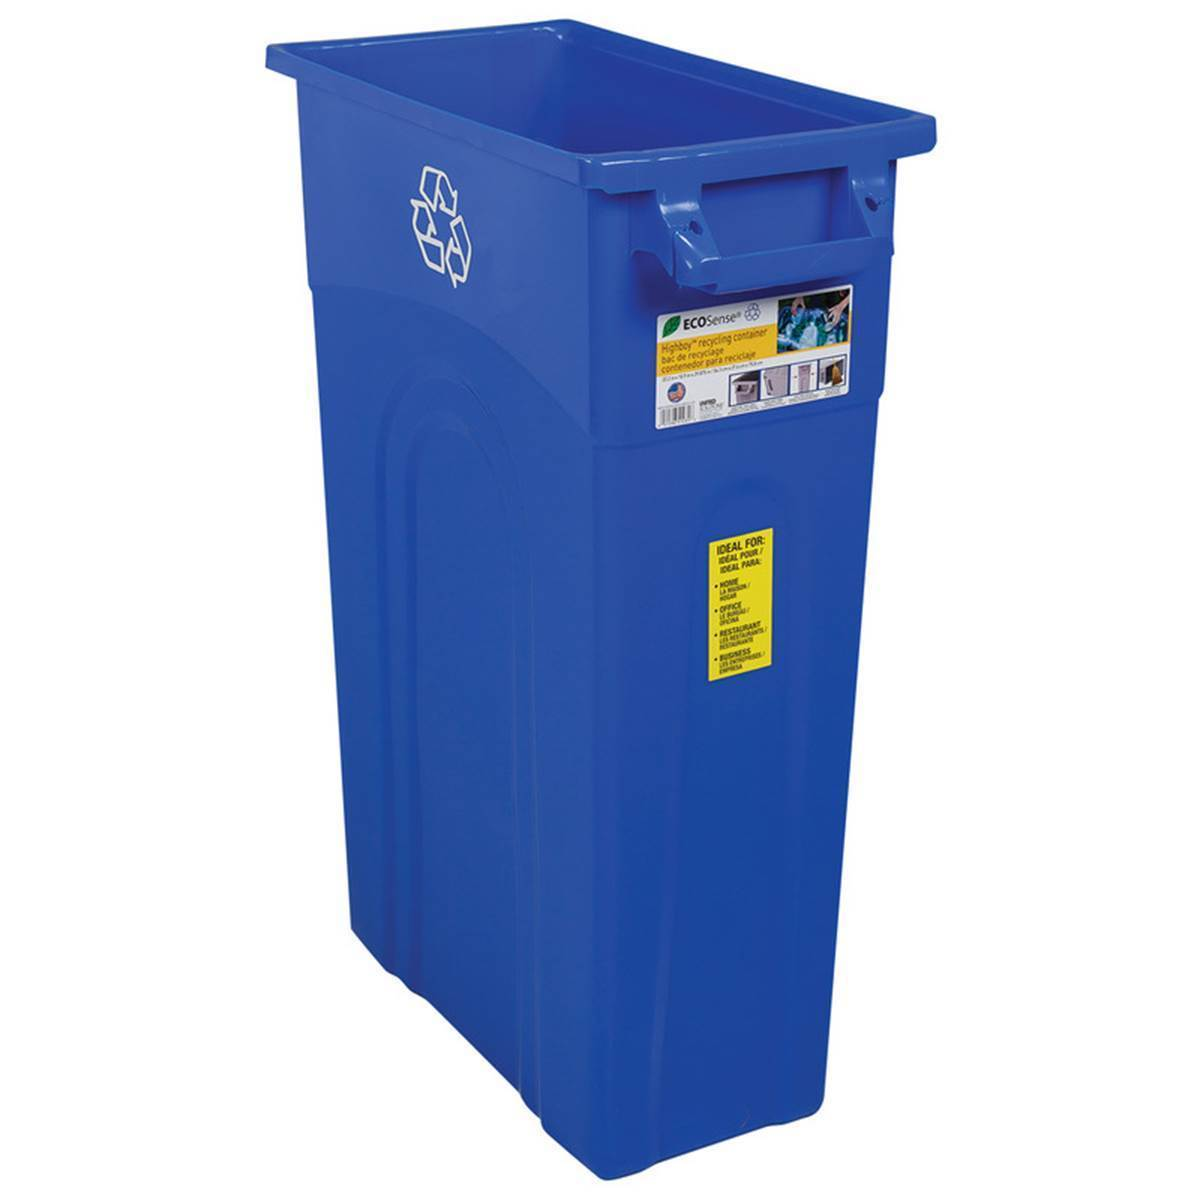 23-Gallon Slim Trash Can - Blue, Highboy Waste Container